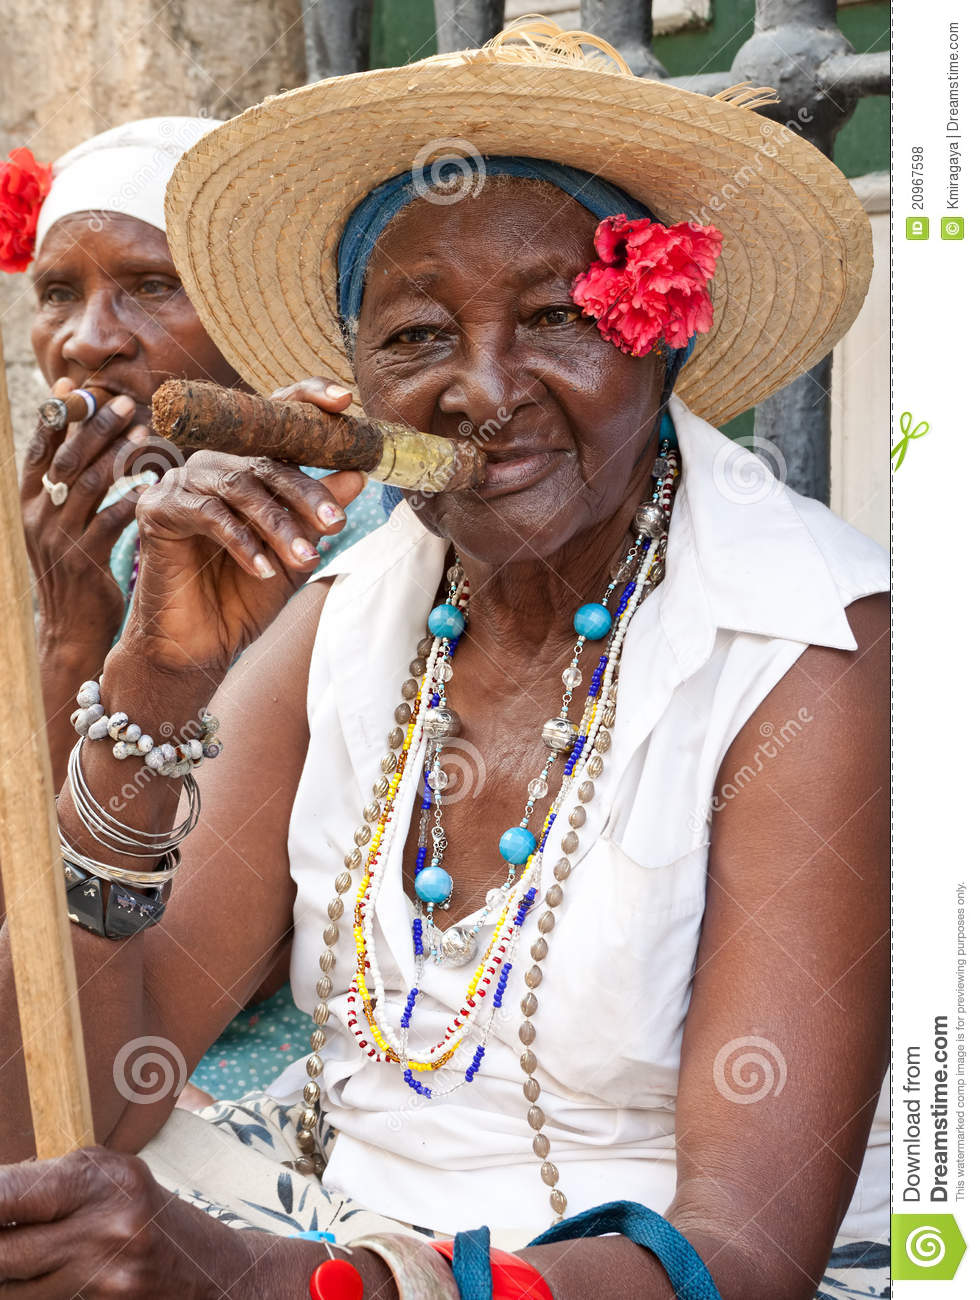 Lady smoking a huge cigar in Havana.Iconic characters like this are an ...